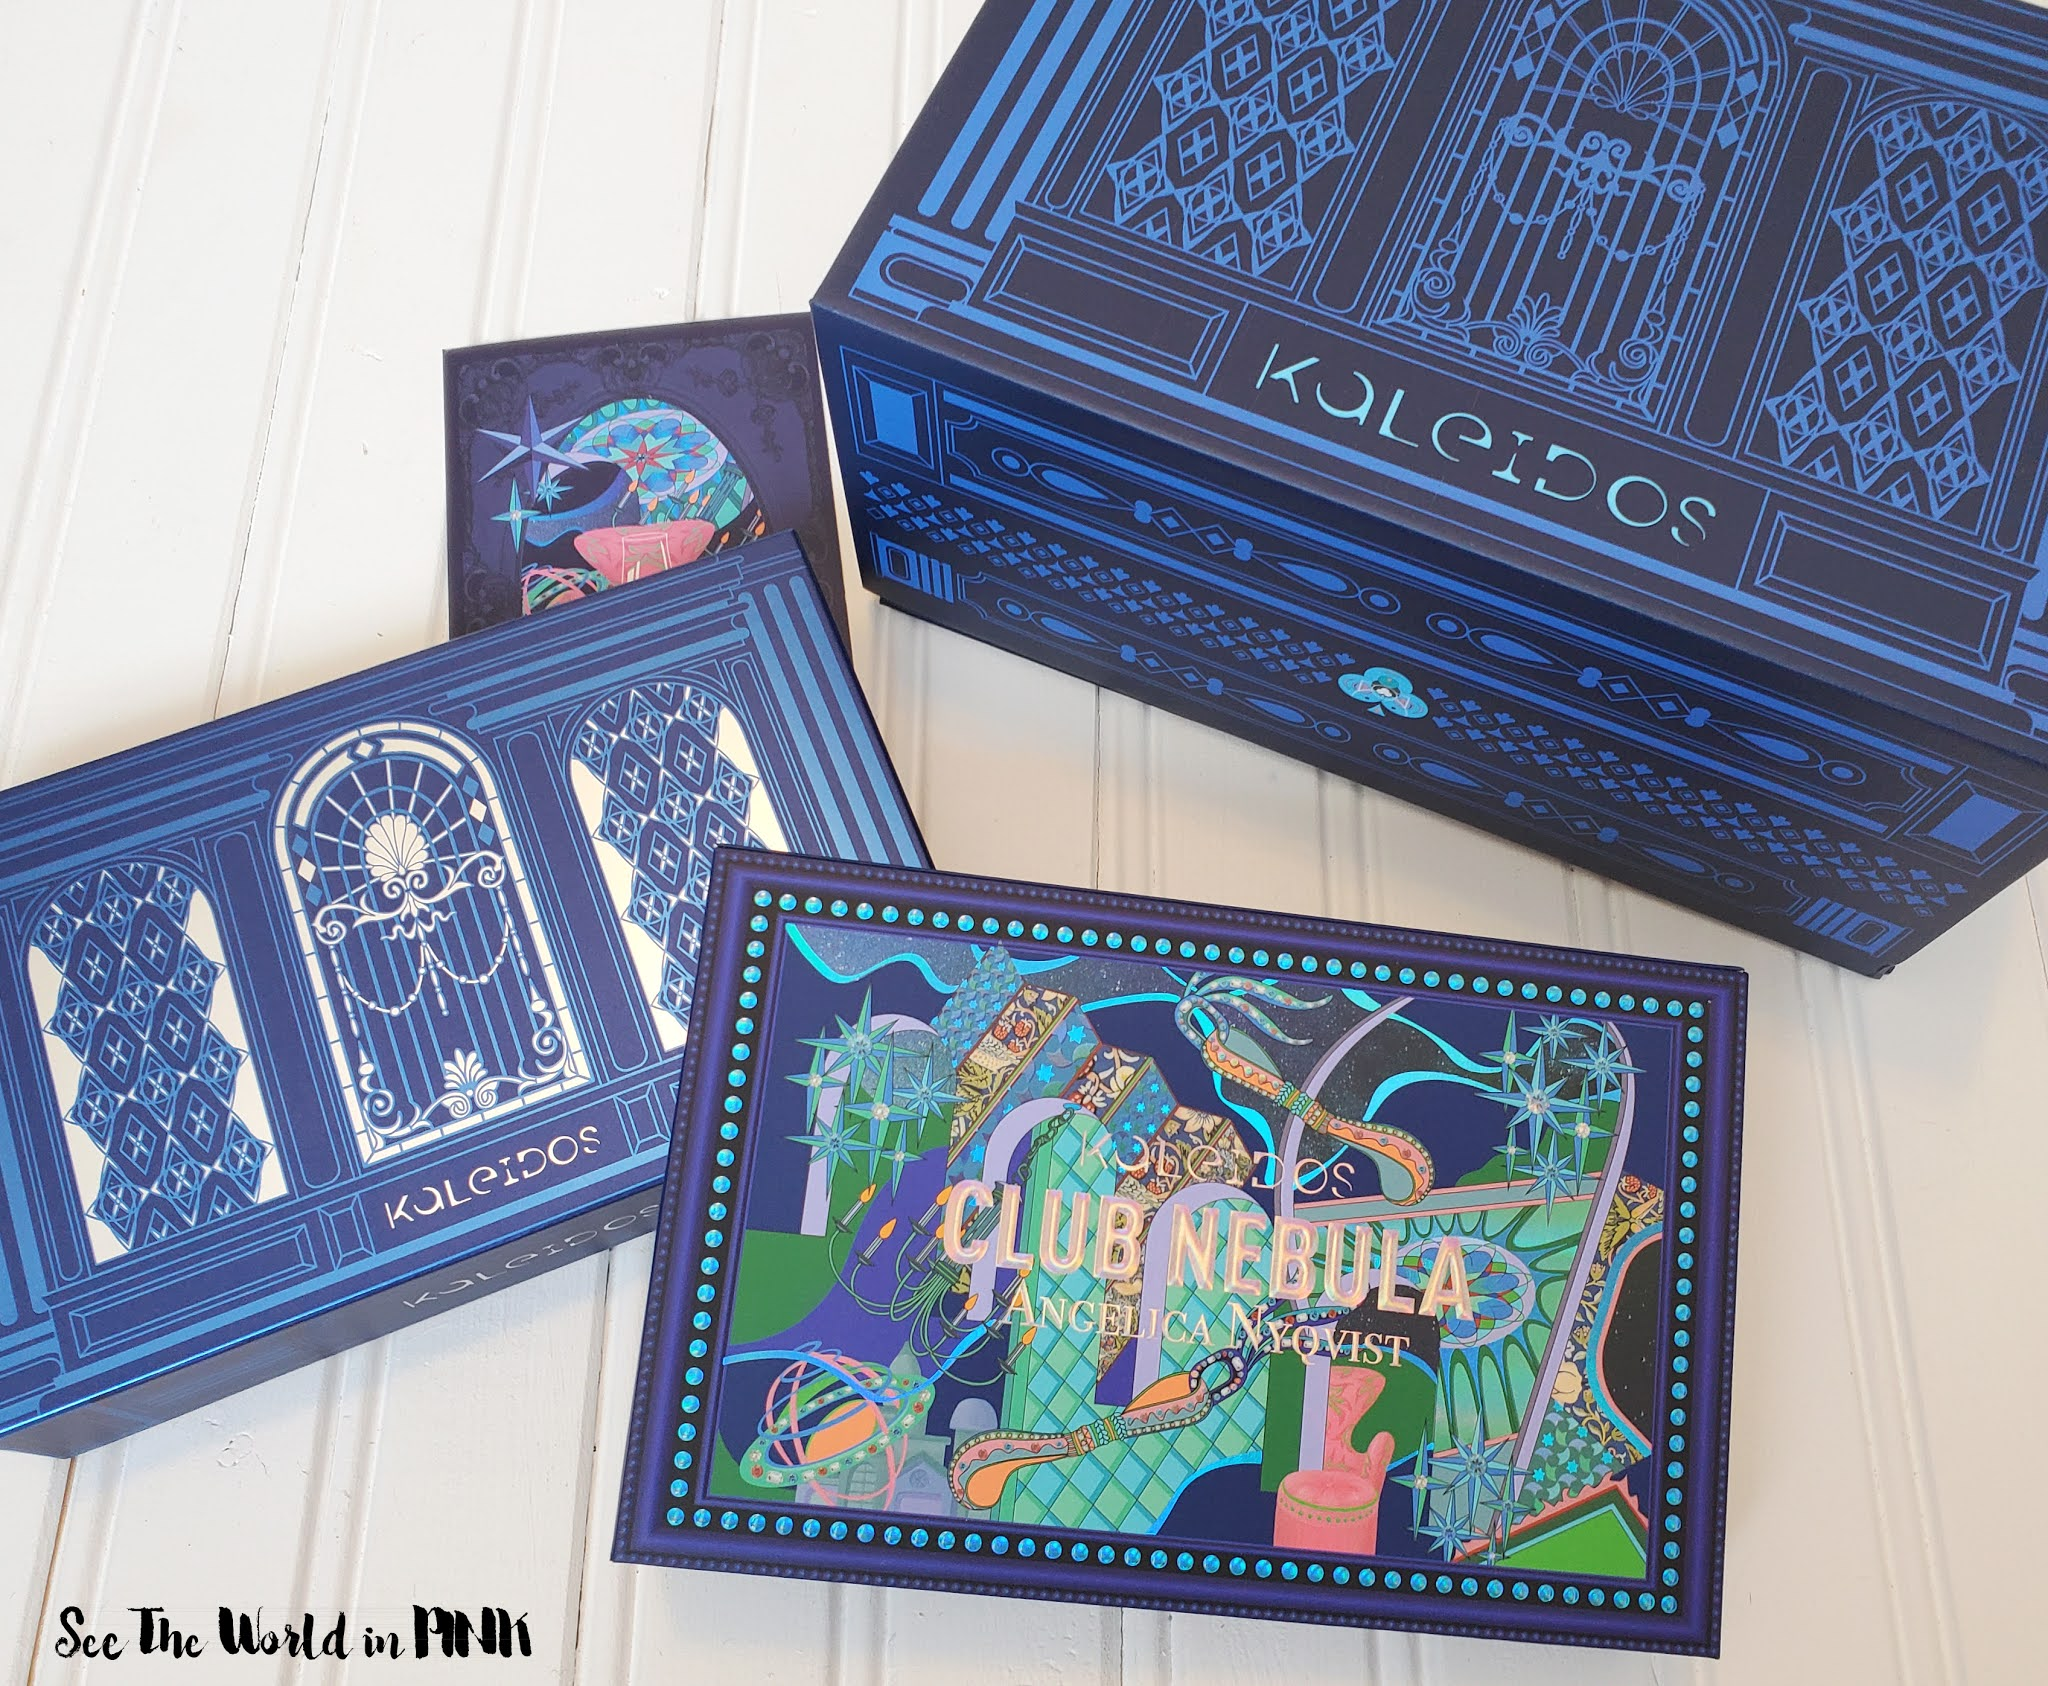 Kaleidos x Angelica Nyqvist The Club Nebula Eyeshadow Palette - Swatches, Looks and Thoughts!